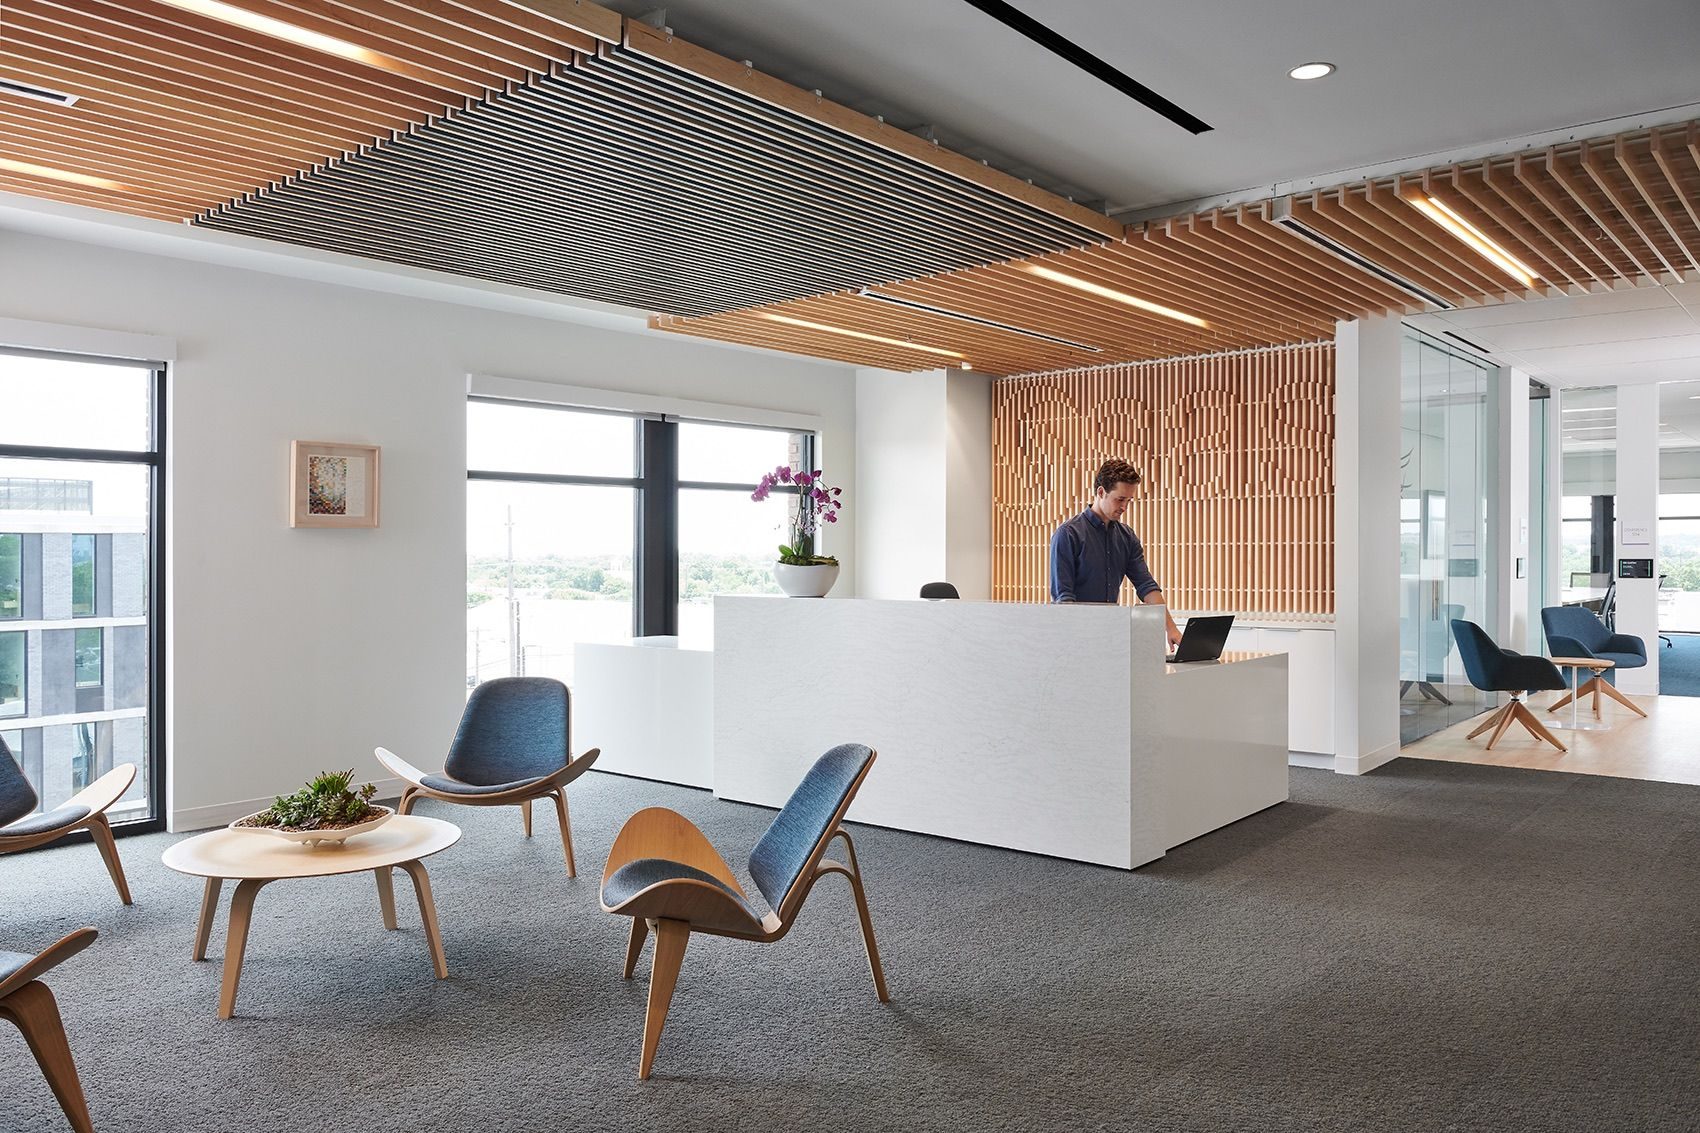 Take a Look Inside SAS's New Austin Office | Lounge design, Industrial office design, Interior architecture